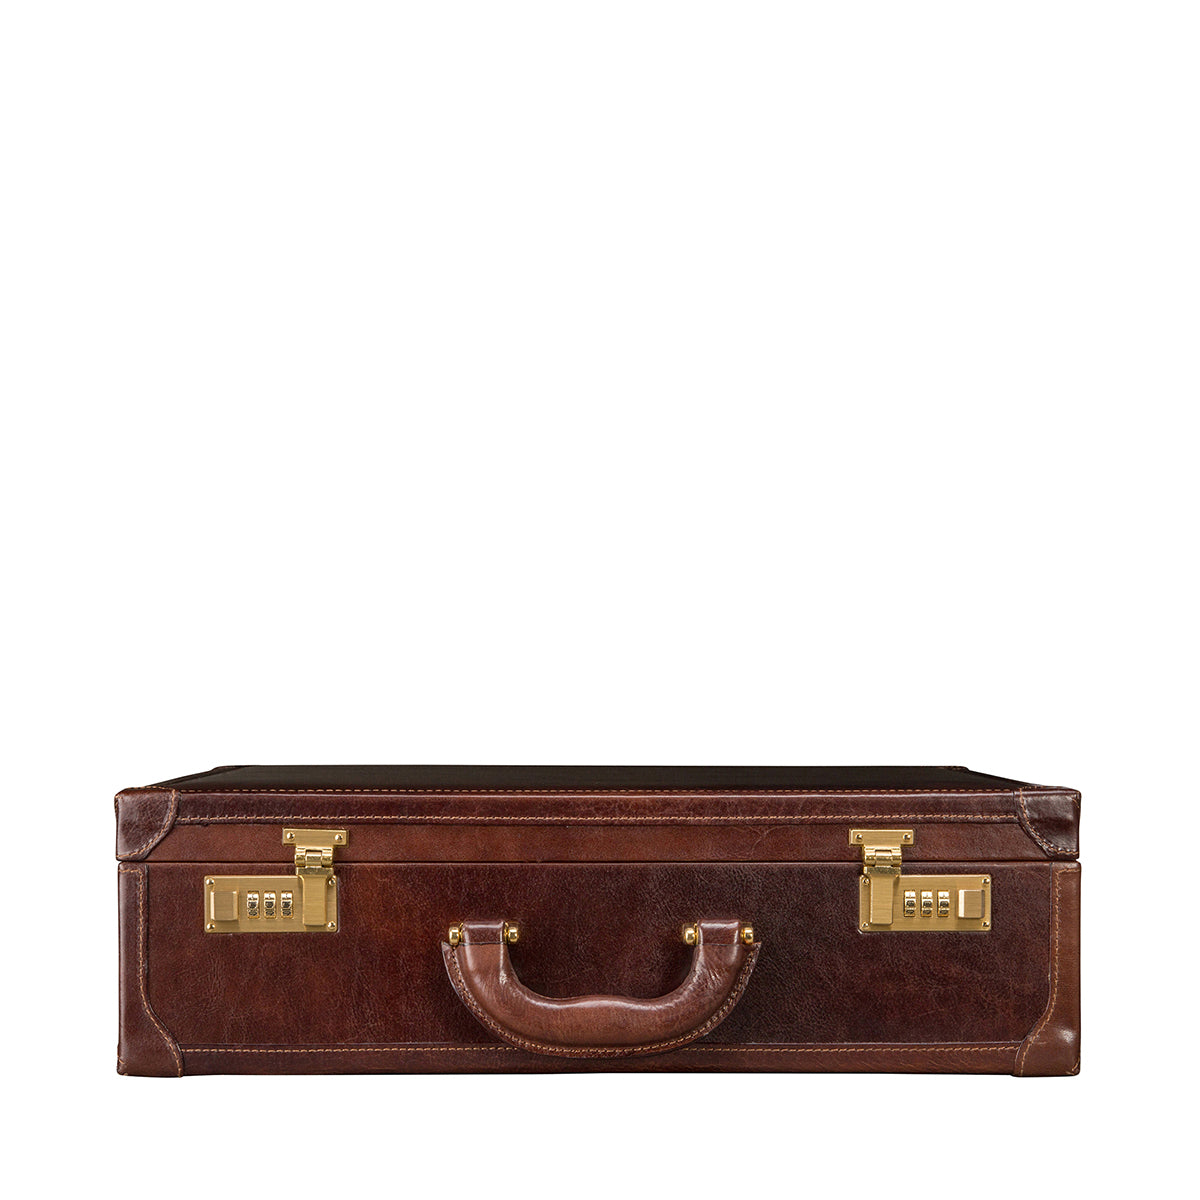 Image 4 of the 'Buroni' Dark Chocolate Veg-Tanned Leather Business Attaché  Case